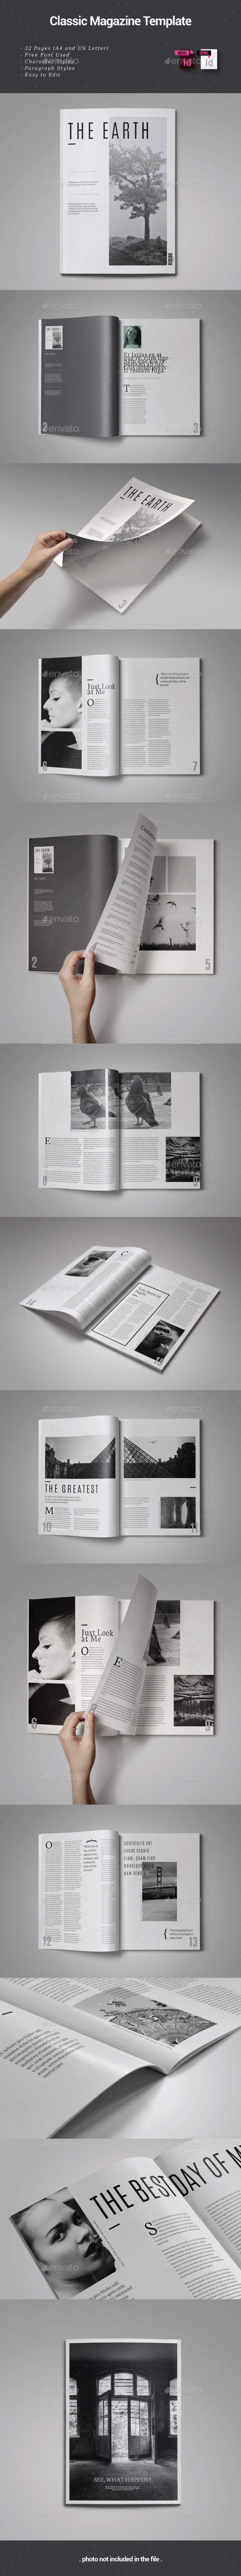 GraphicRiver 32 Pages Indesign Magazine Template 9112619